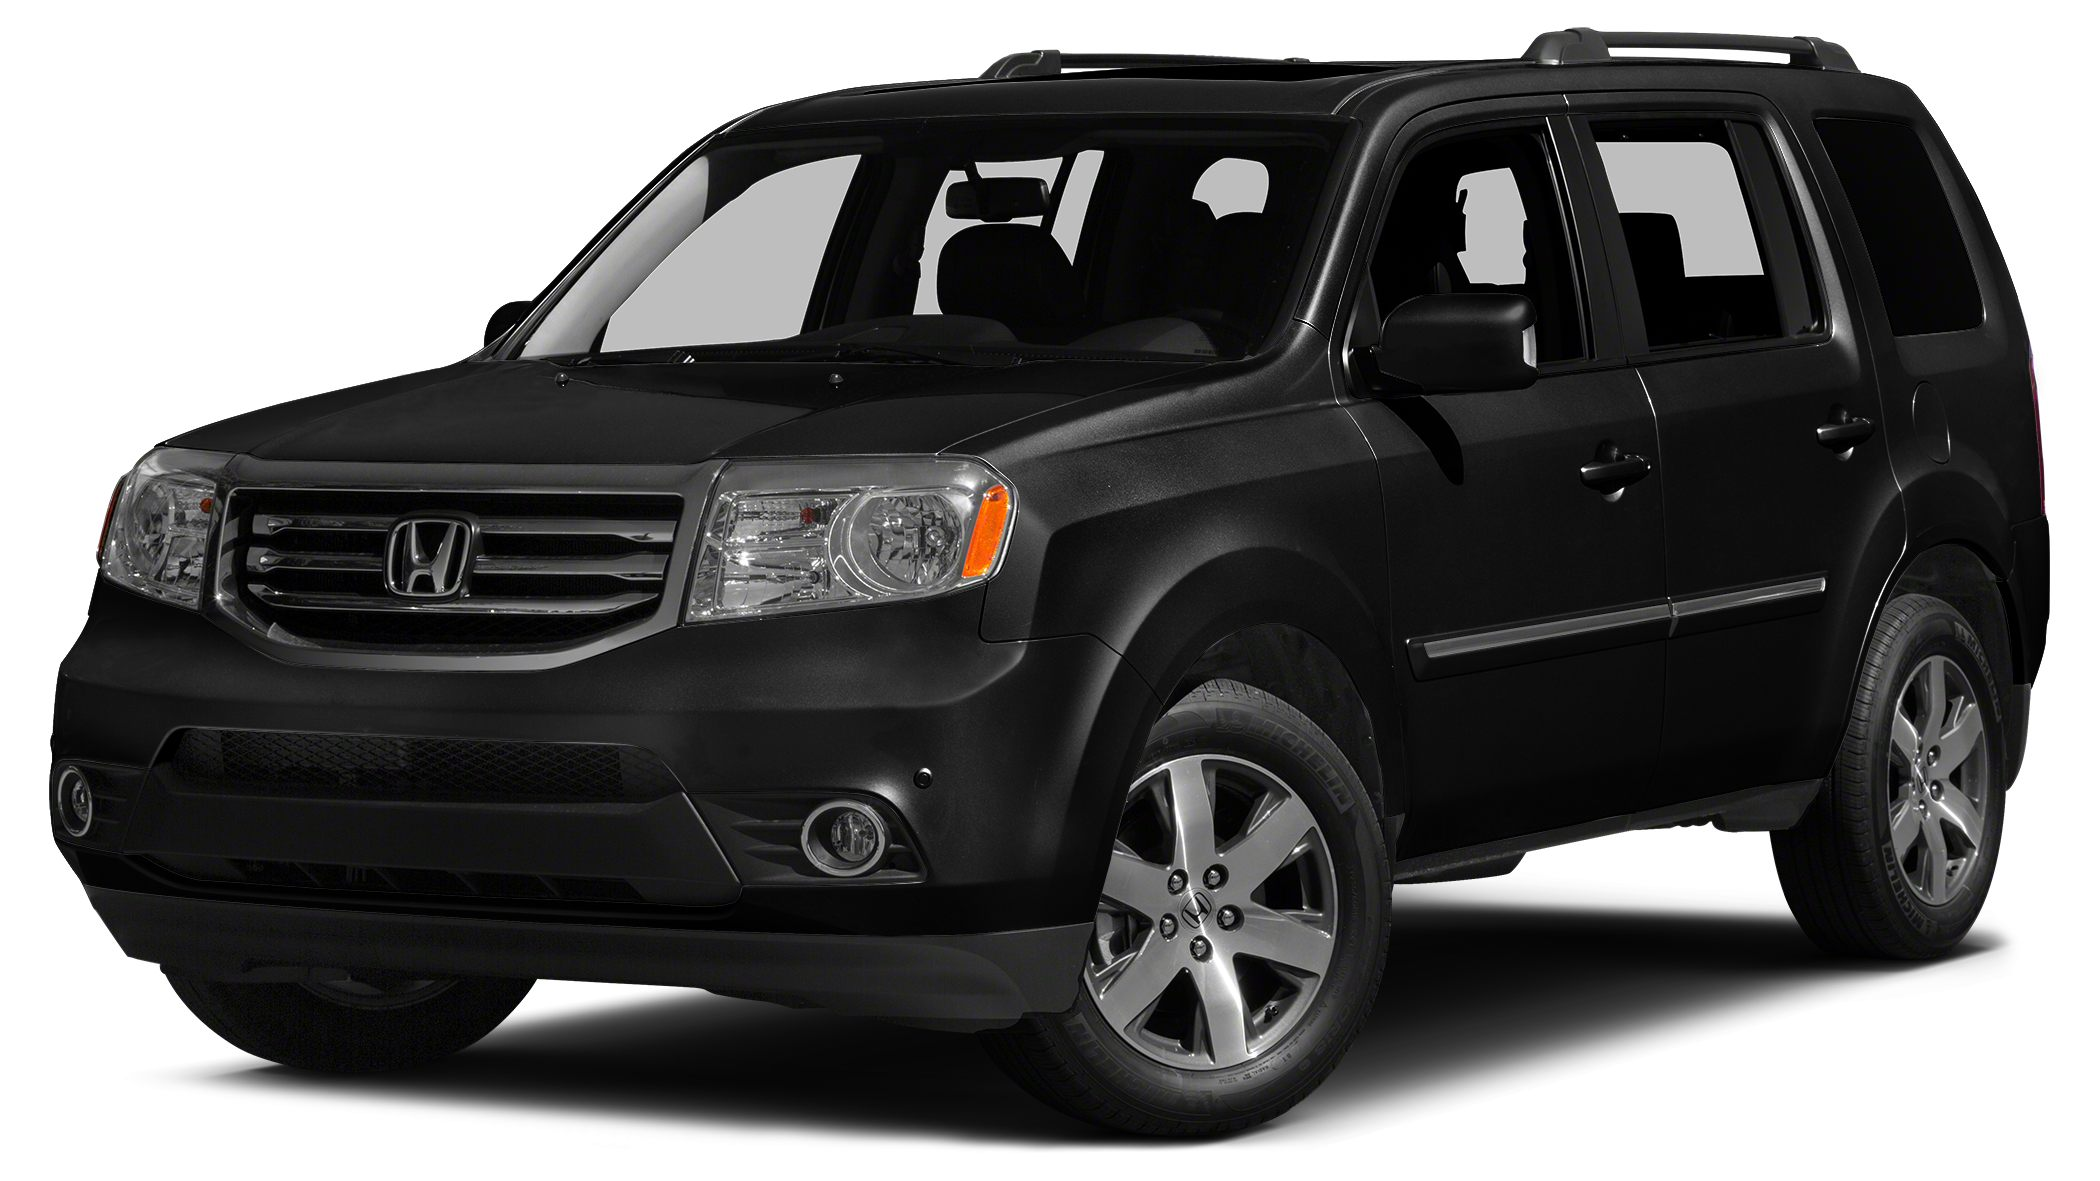 2013 Honda Pilot Touring w RES Navigation 2 YEARS MAINTENANCE INCLUDED WITH EVERY VEHICLE PURCHA